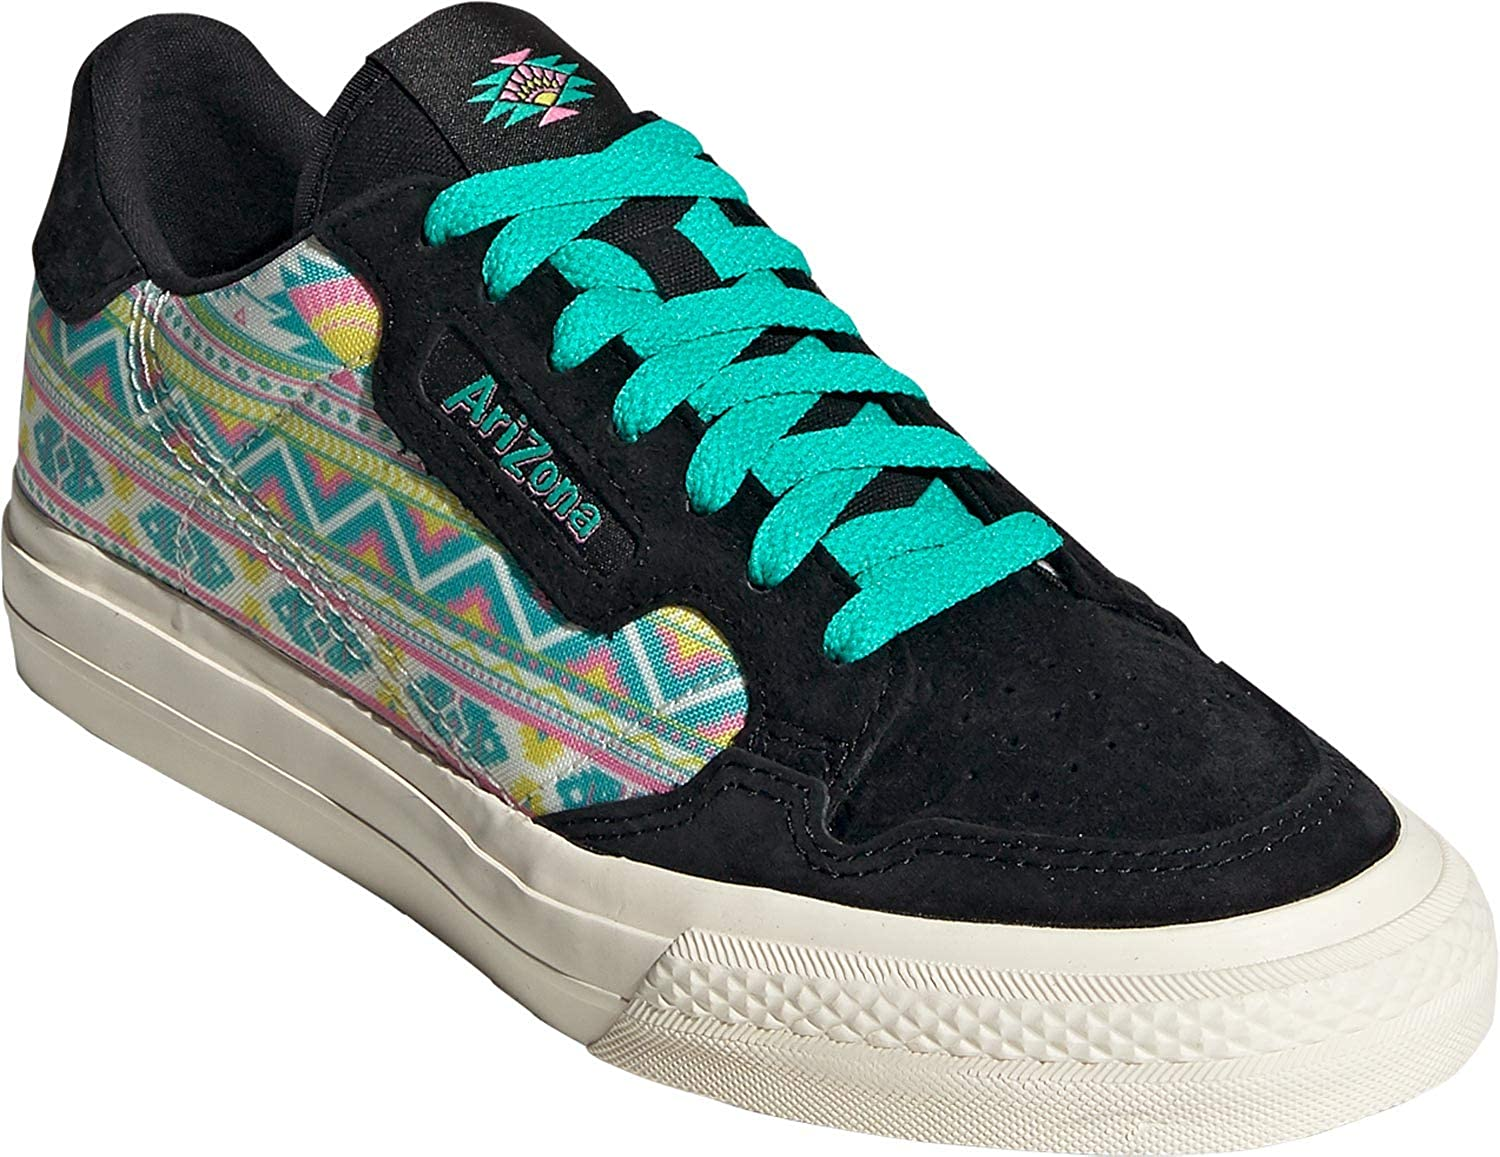 Adidas x Arizona Iced Tea Continental Continental Vulc W schwarz Weiß Supplier Colour